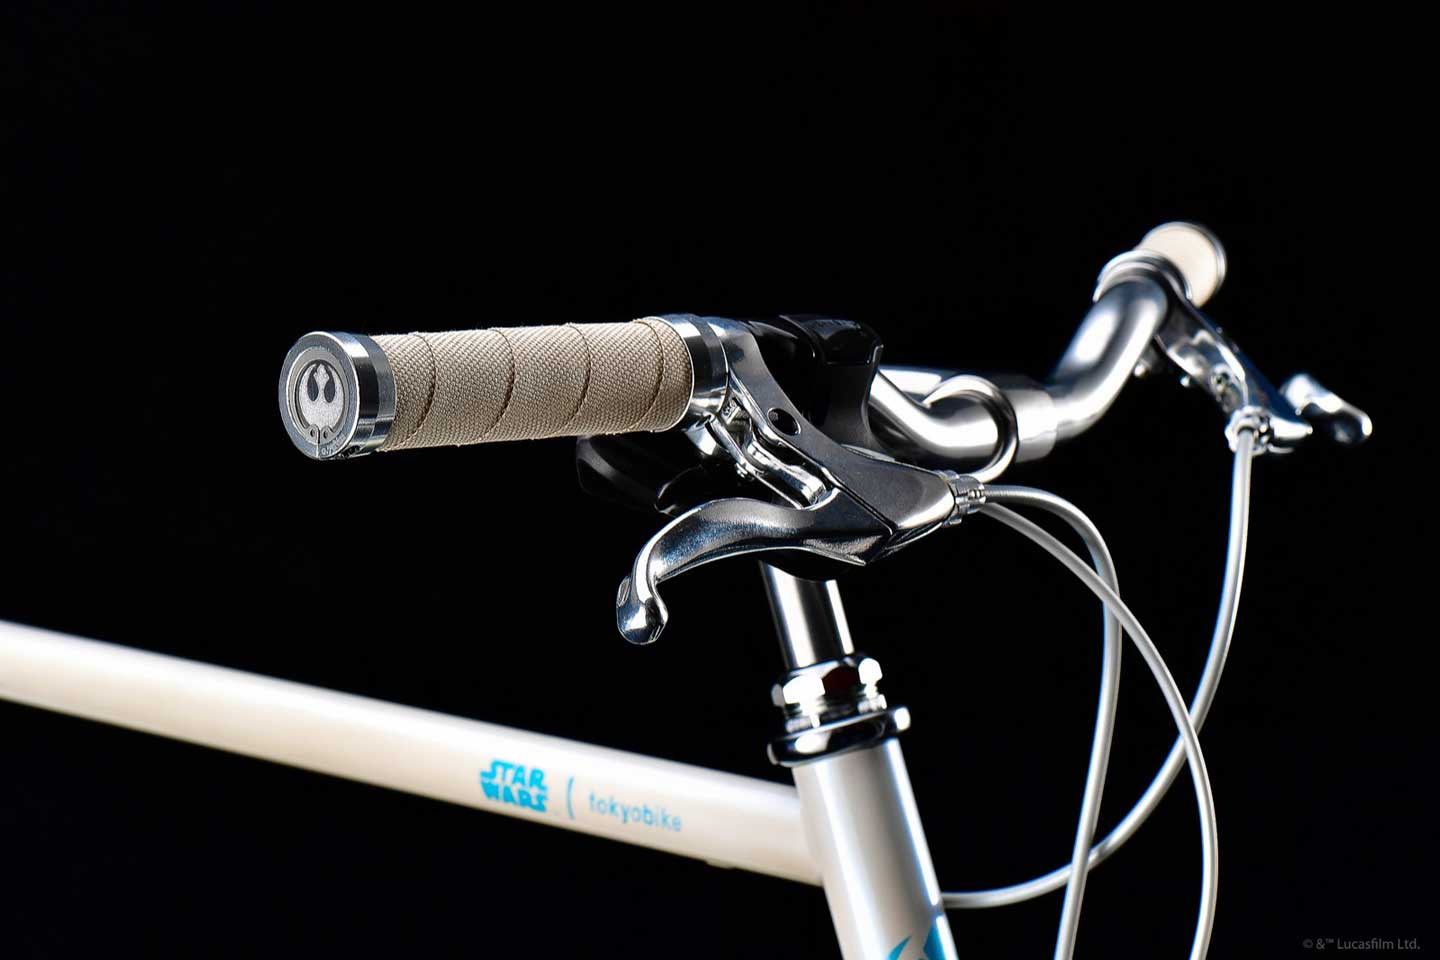 STAR WARS x tokyobike Rey - handlebar with customization Resistant logo on grips end